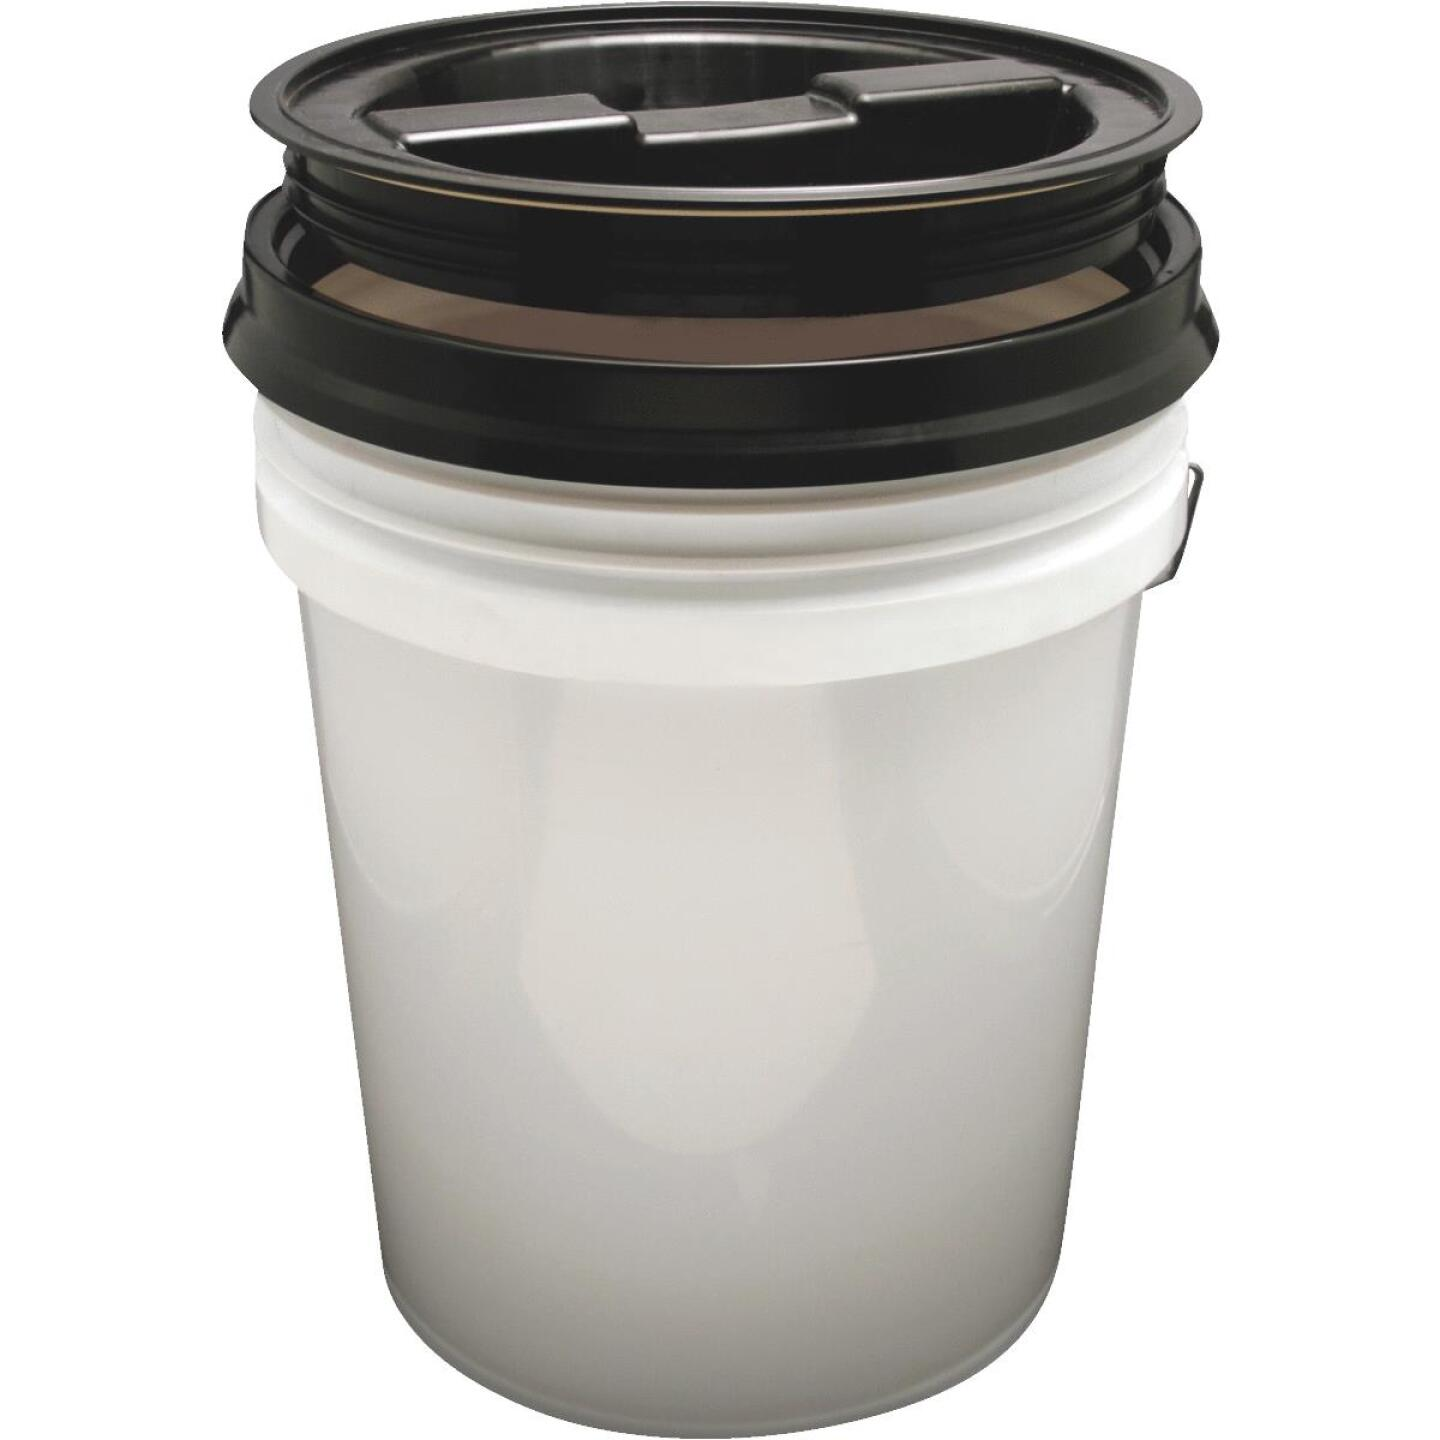 Leaktite 3.5 & 5 Gallon Pail Screw Top Lid Image 3